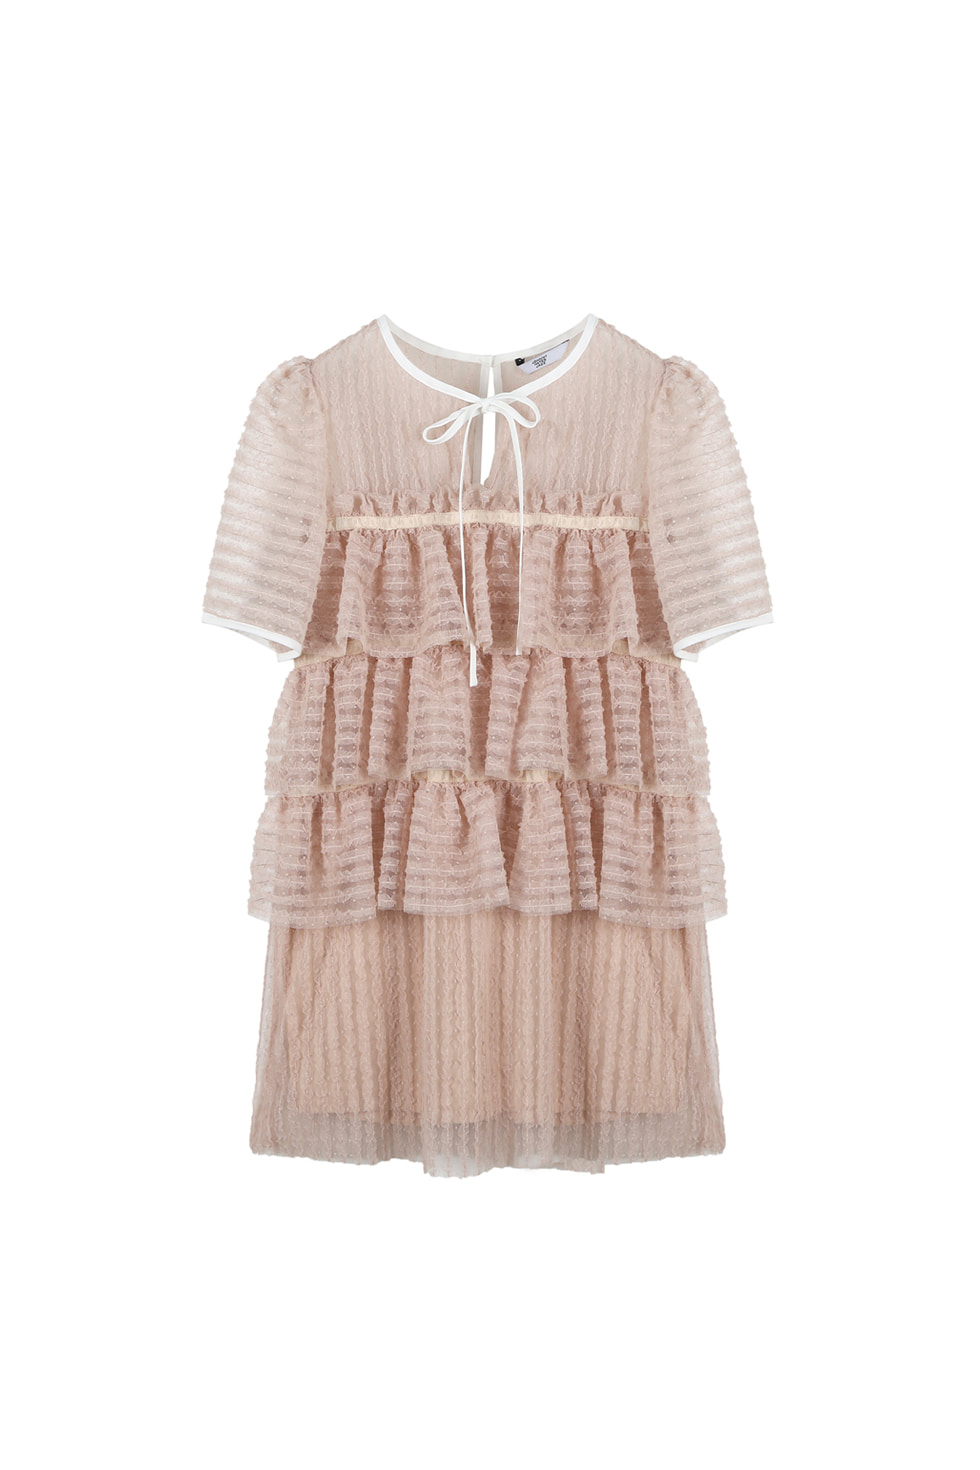 TULLED MINI DRESS - BEIGE